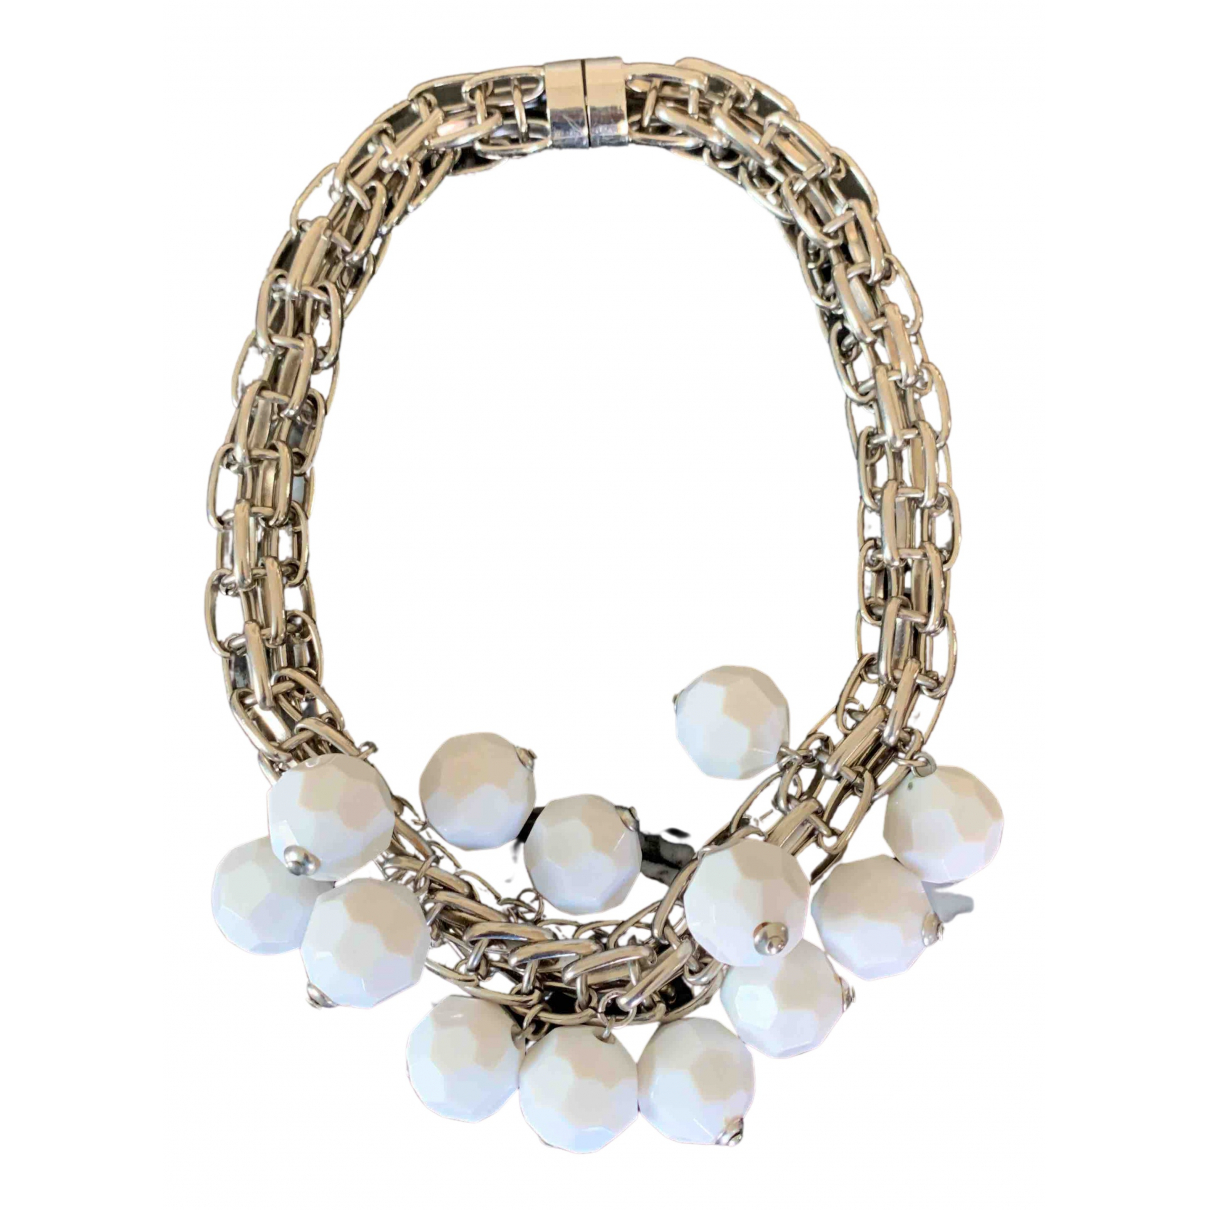 Marni N White Metal necklace for Women N